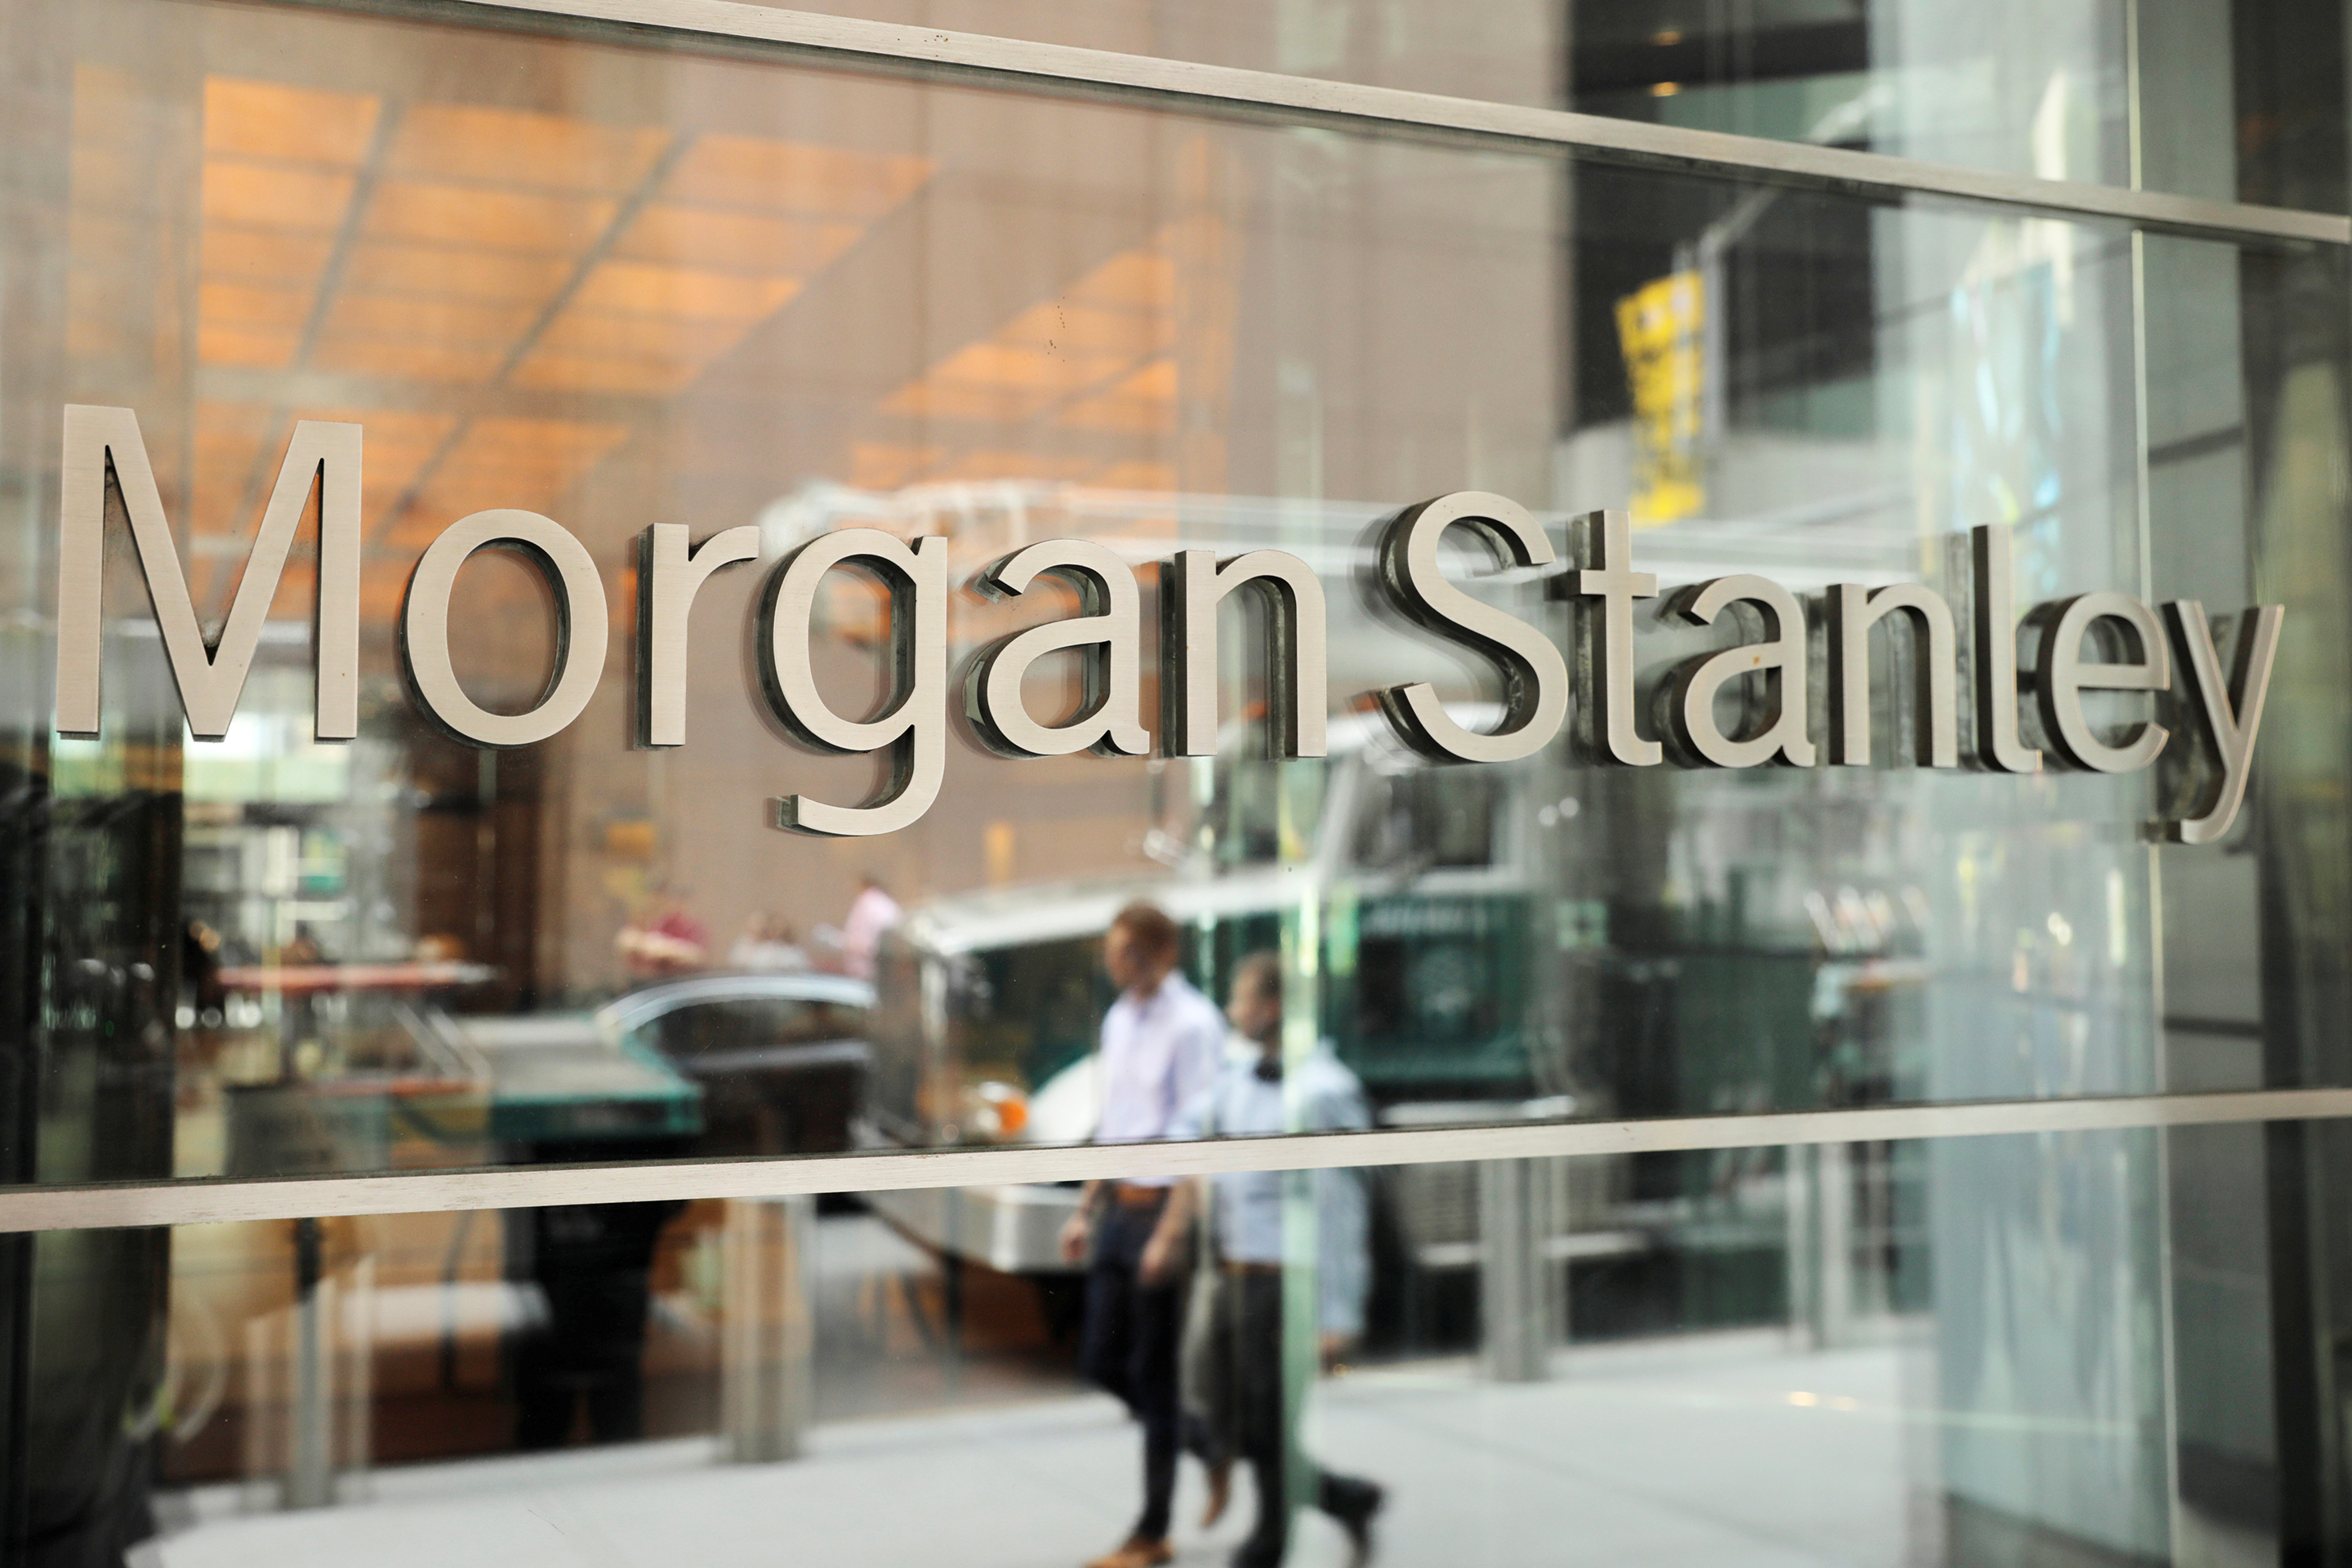 Morgan Stanley will be the first big bank to offer crypto funds